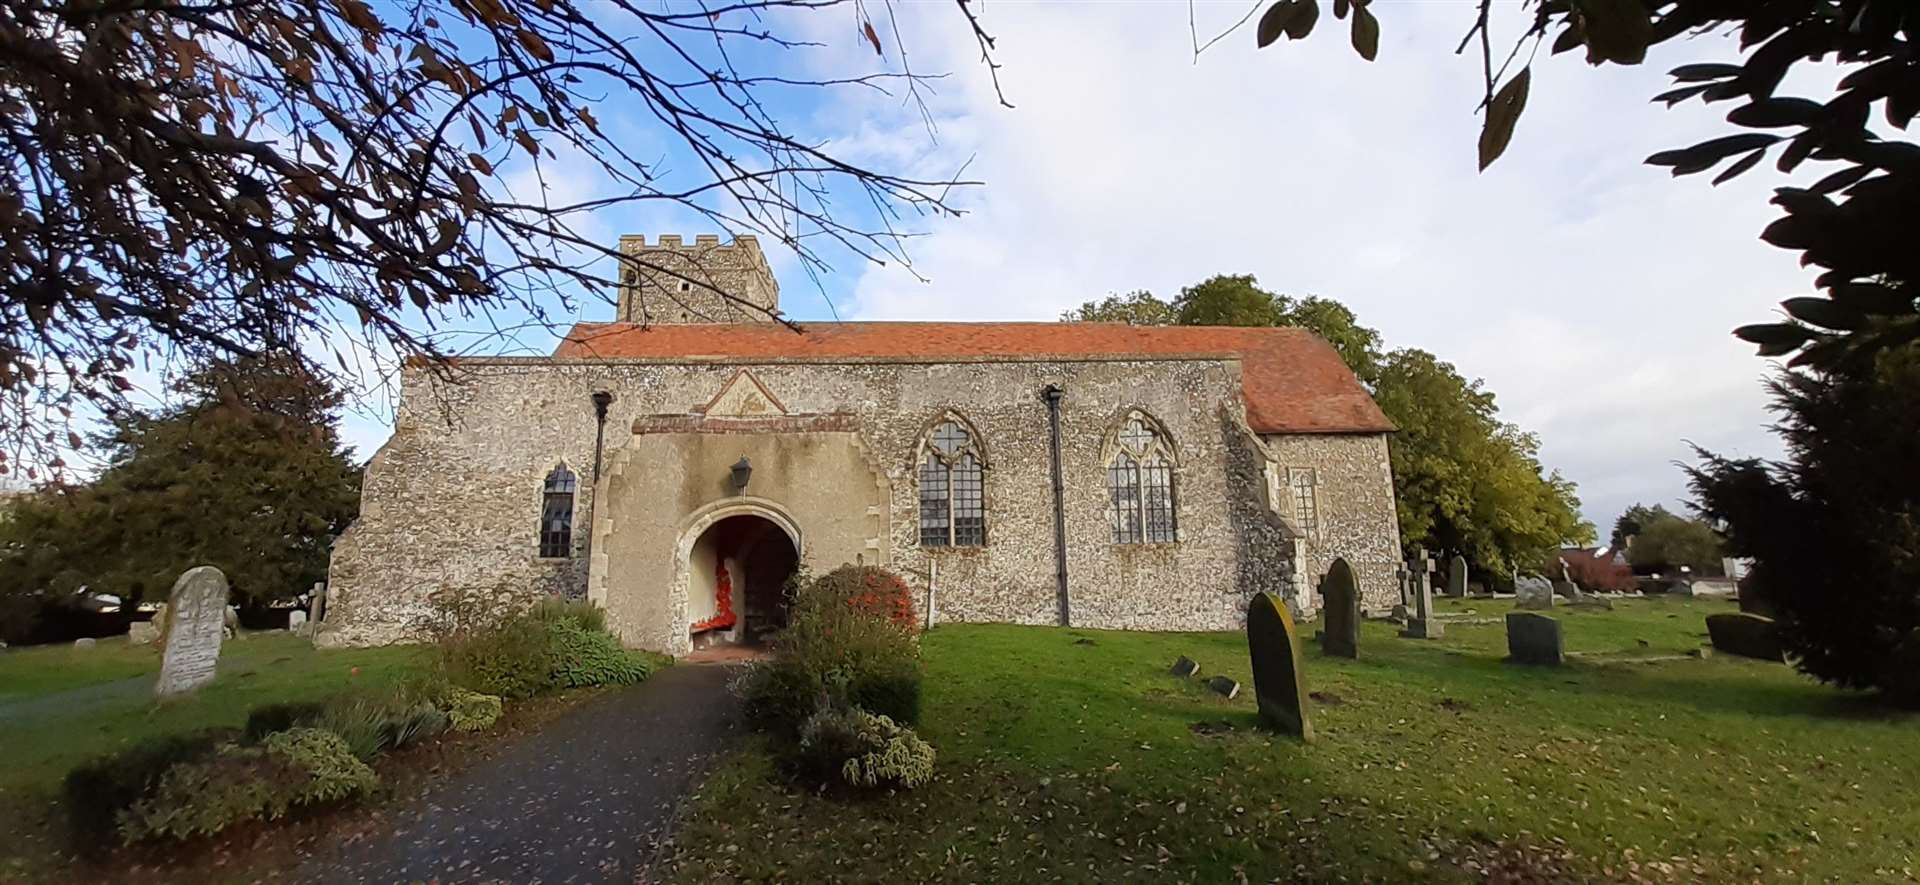 All Saints' Church in Graveney may have to close its doors for good within the next two years